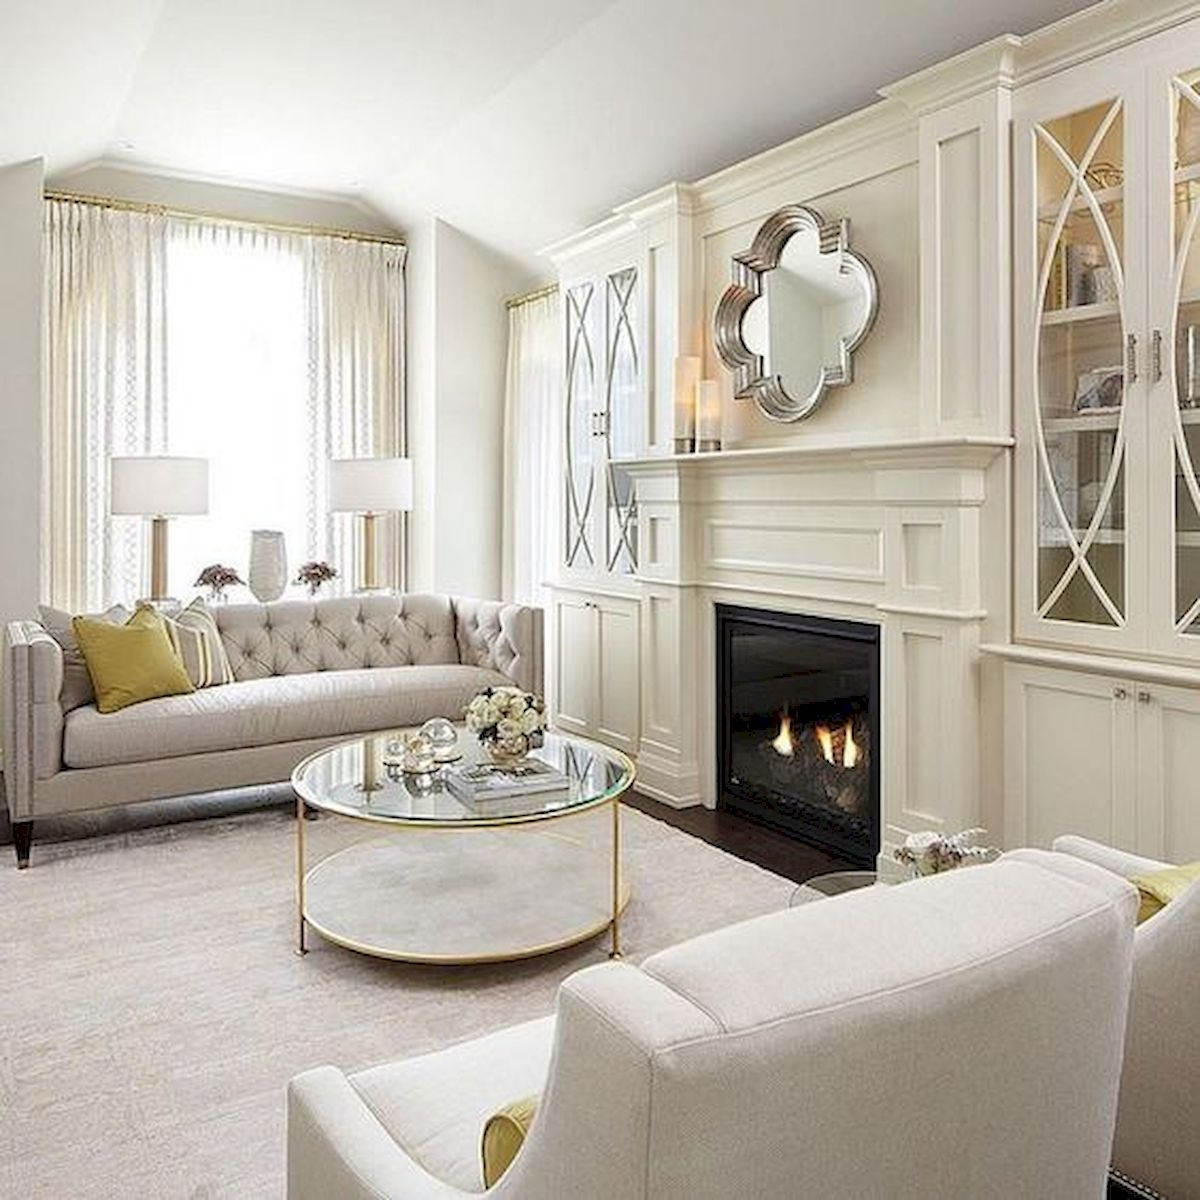 49 Elegant Living Room Decor Ideas